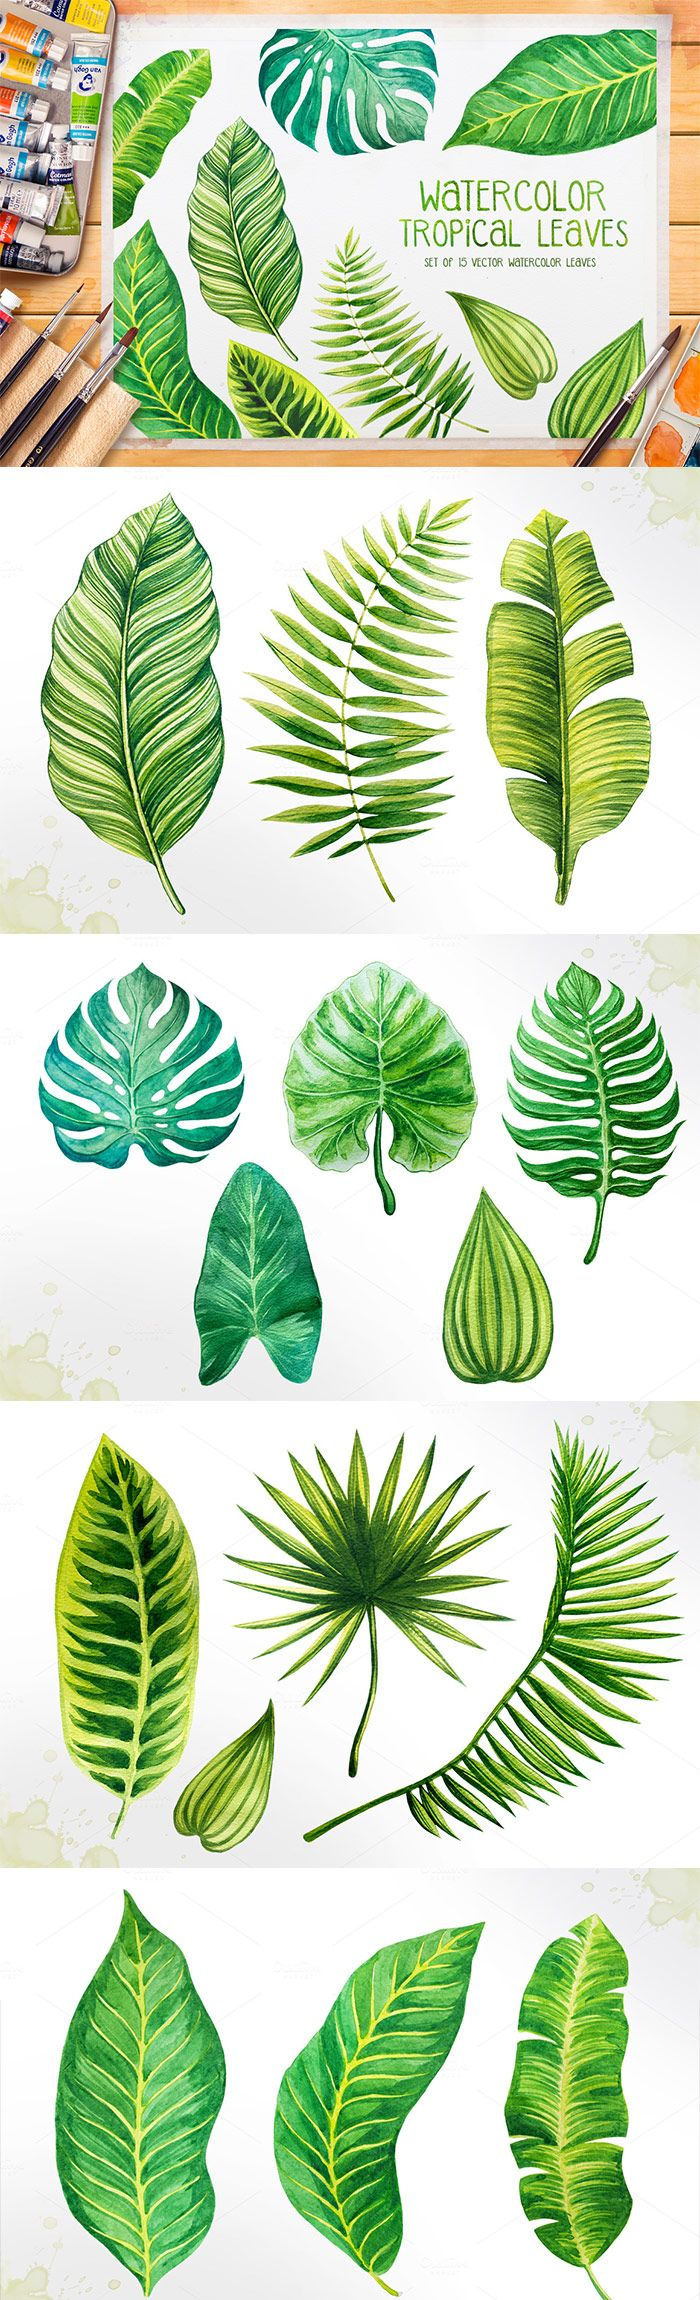 Set of 15 watercolor tropical leaves illustrations. Illustrations are drawn  by hand and vectorized. You can use it for making design projects, ...